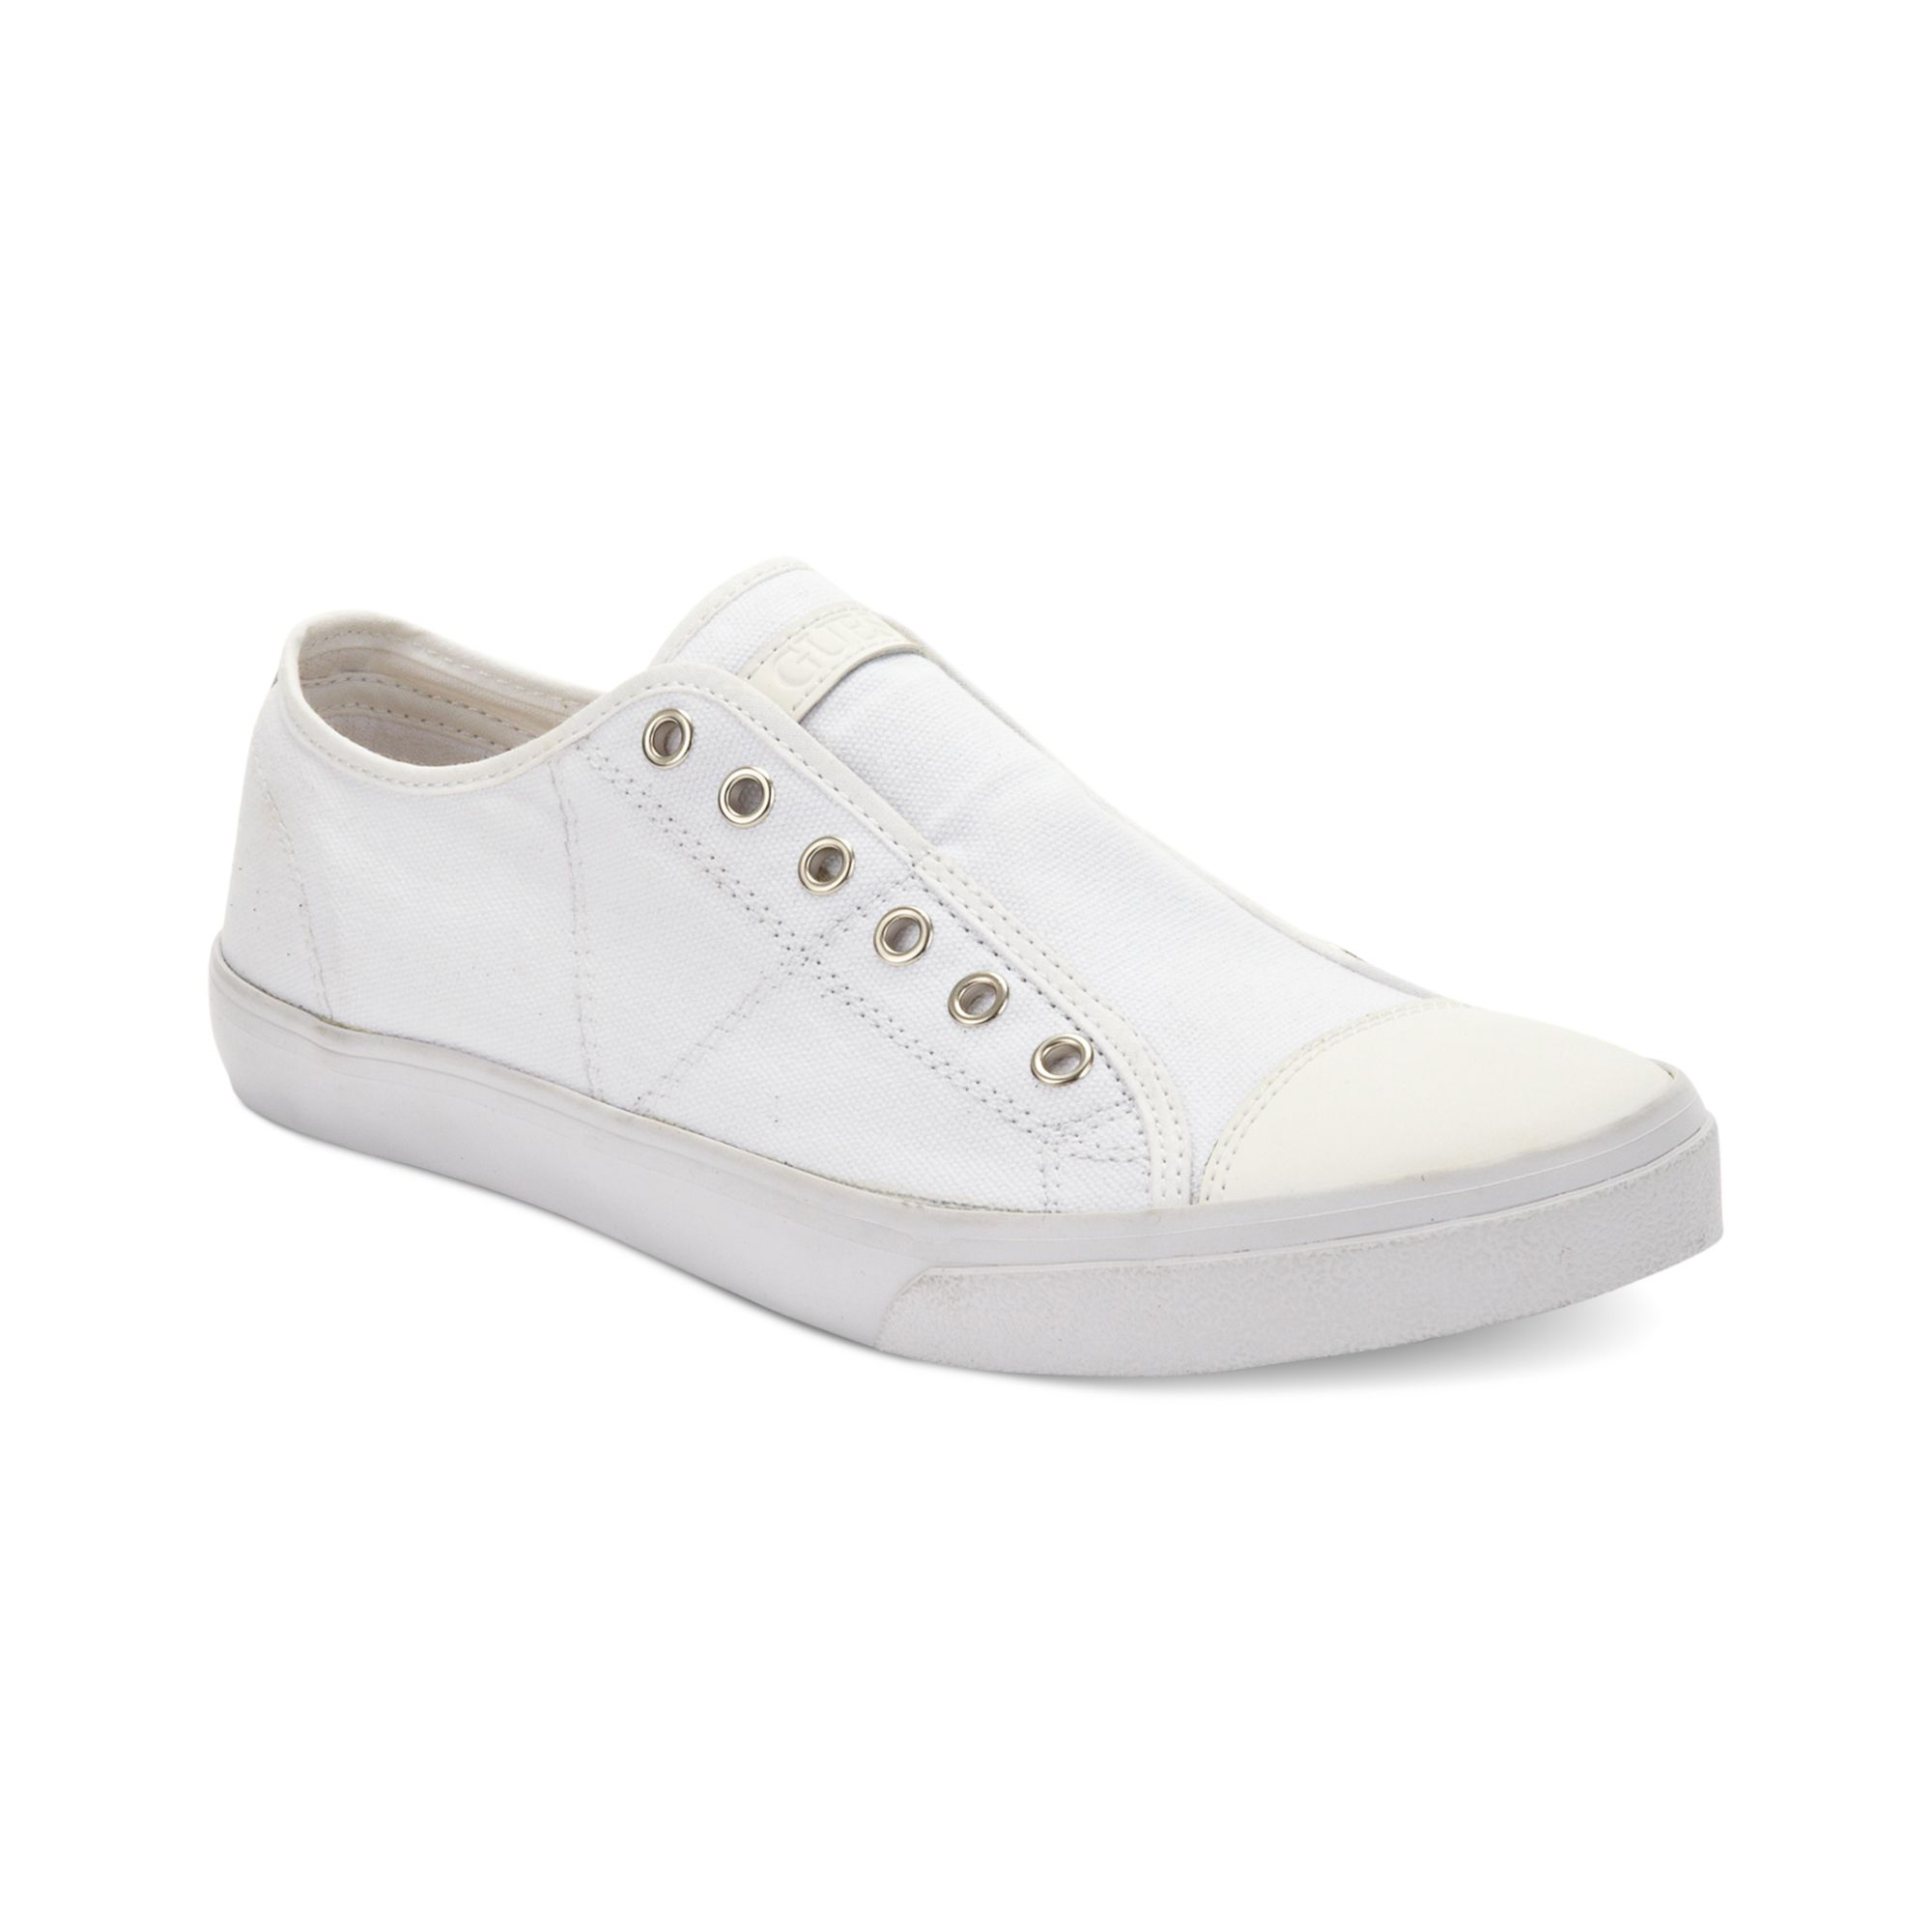 For Mens Men Mickey Lyst Guess Shoes White Sneakers In Swng0 f5b73aeea56